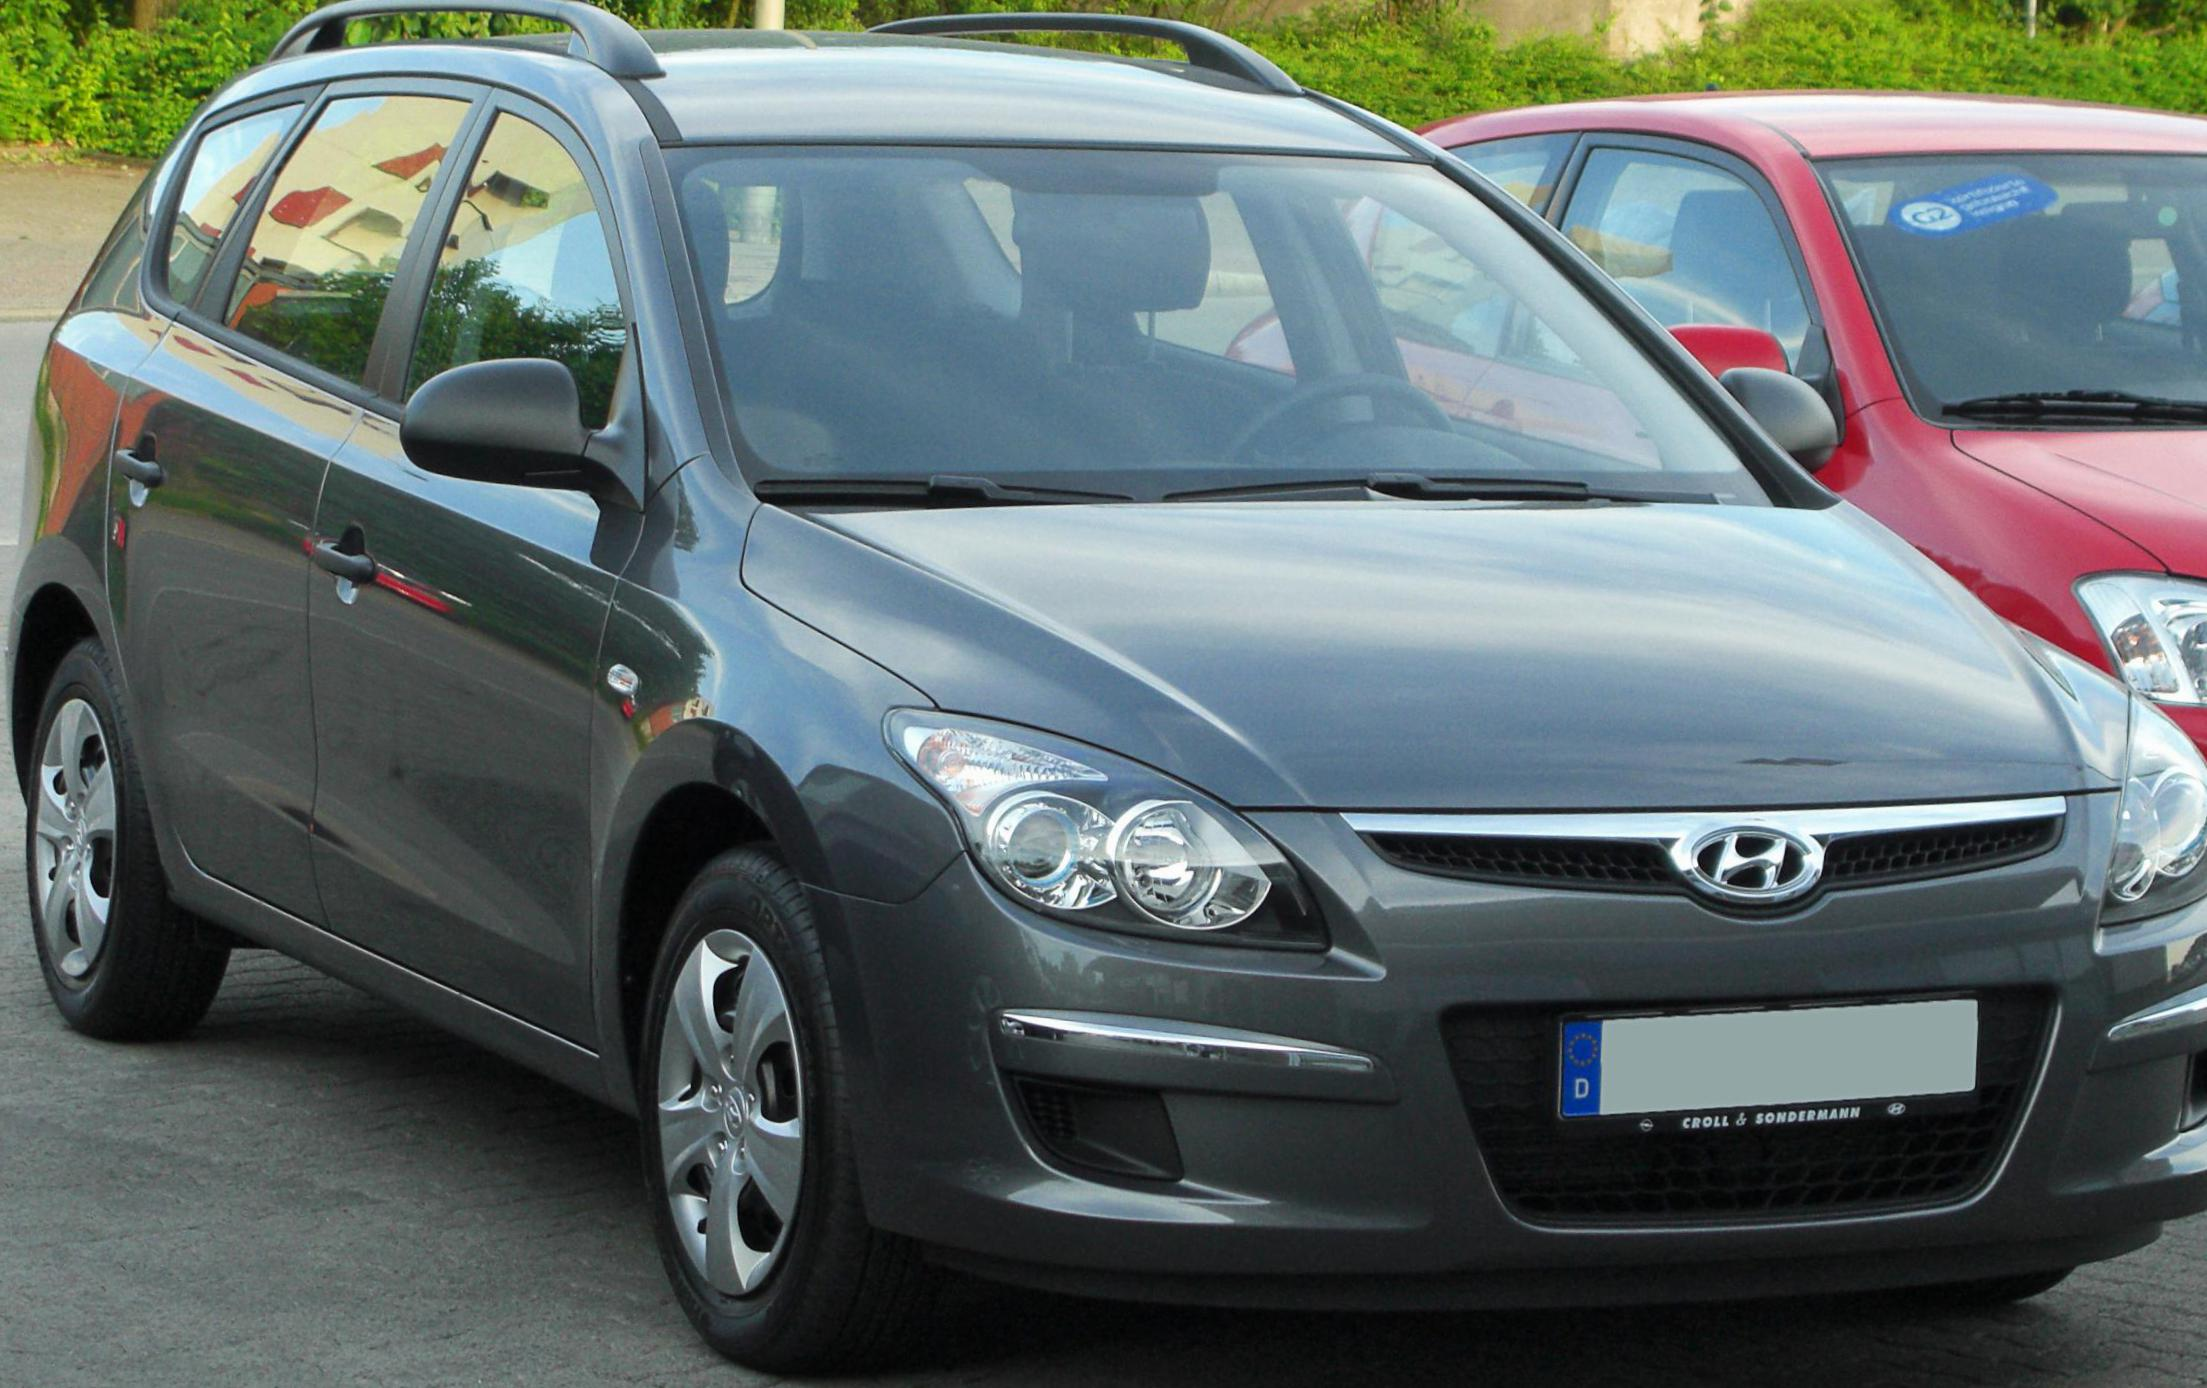 Hyundai i30cw Specifications suv